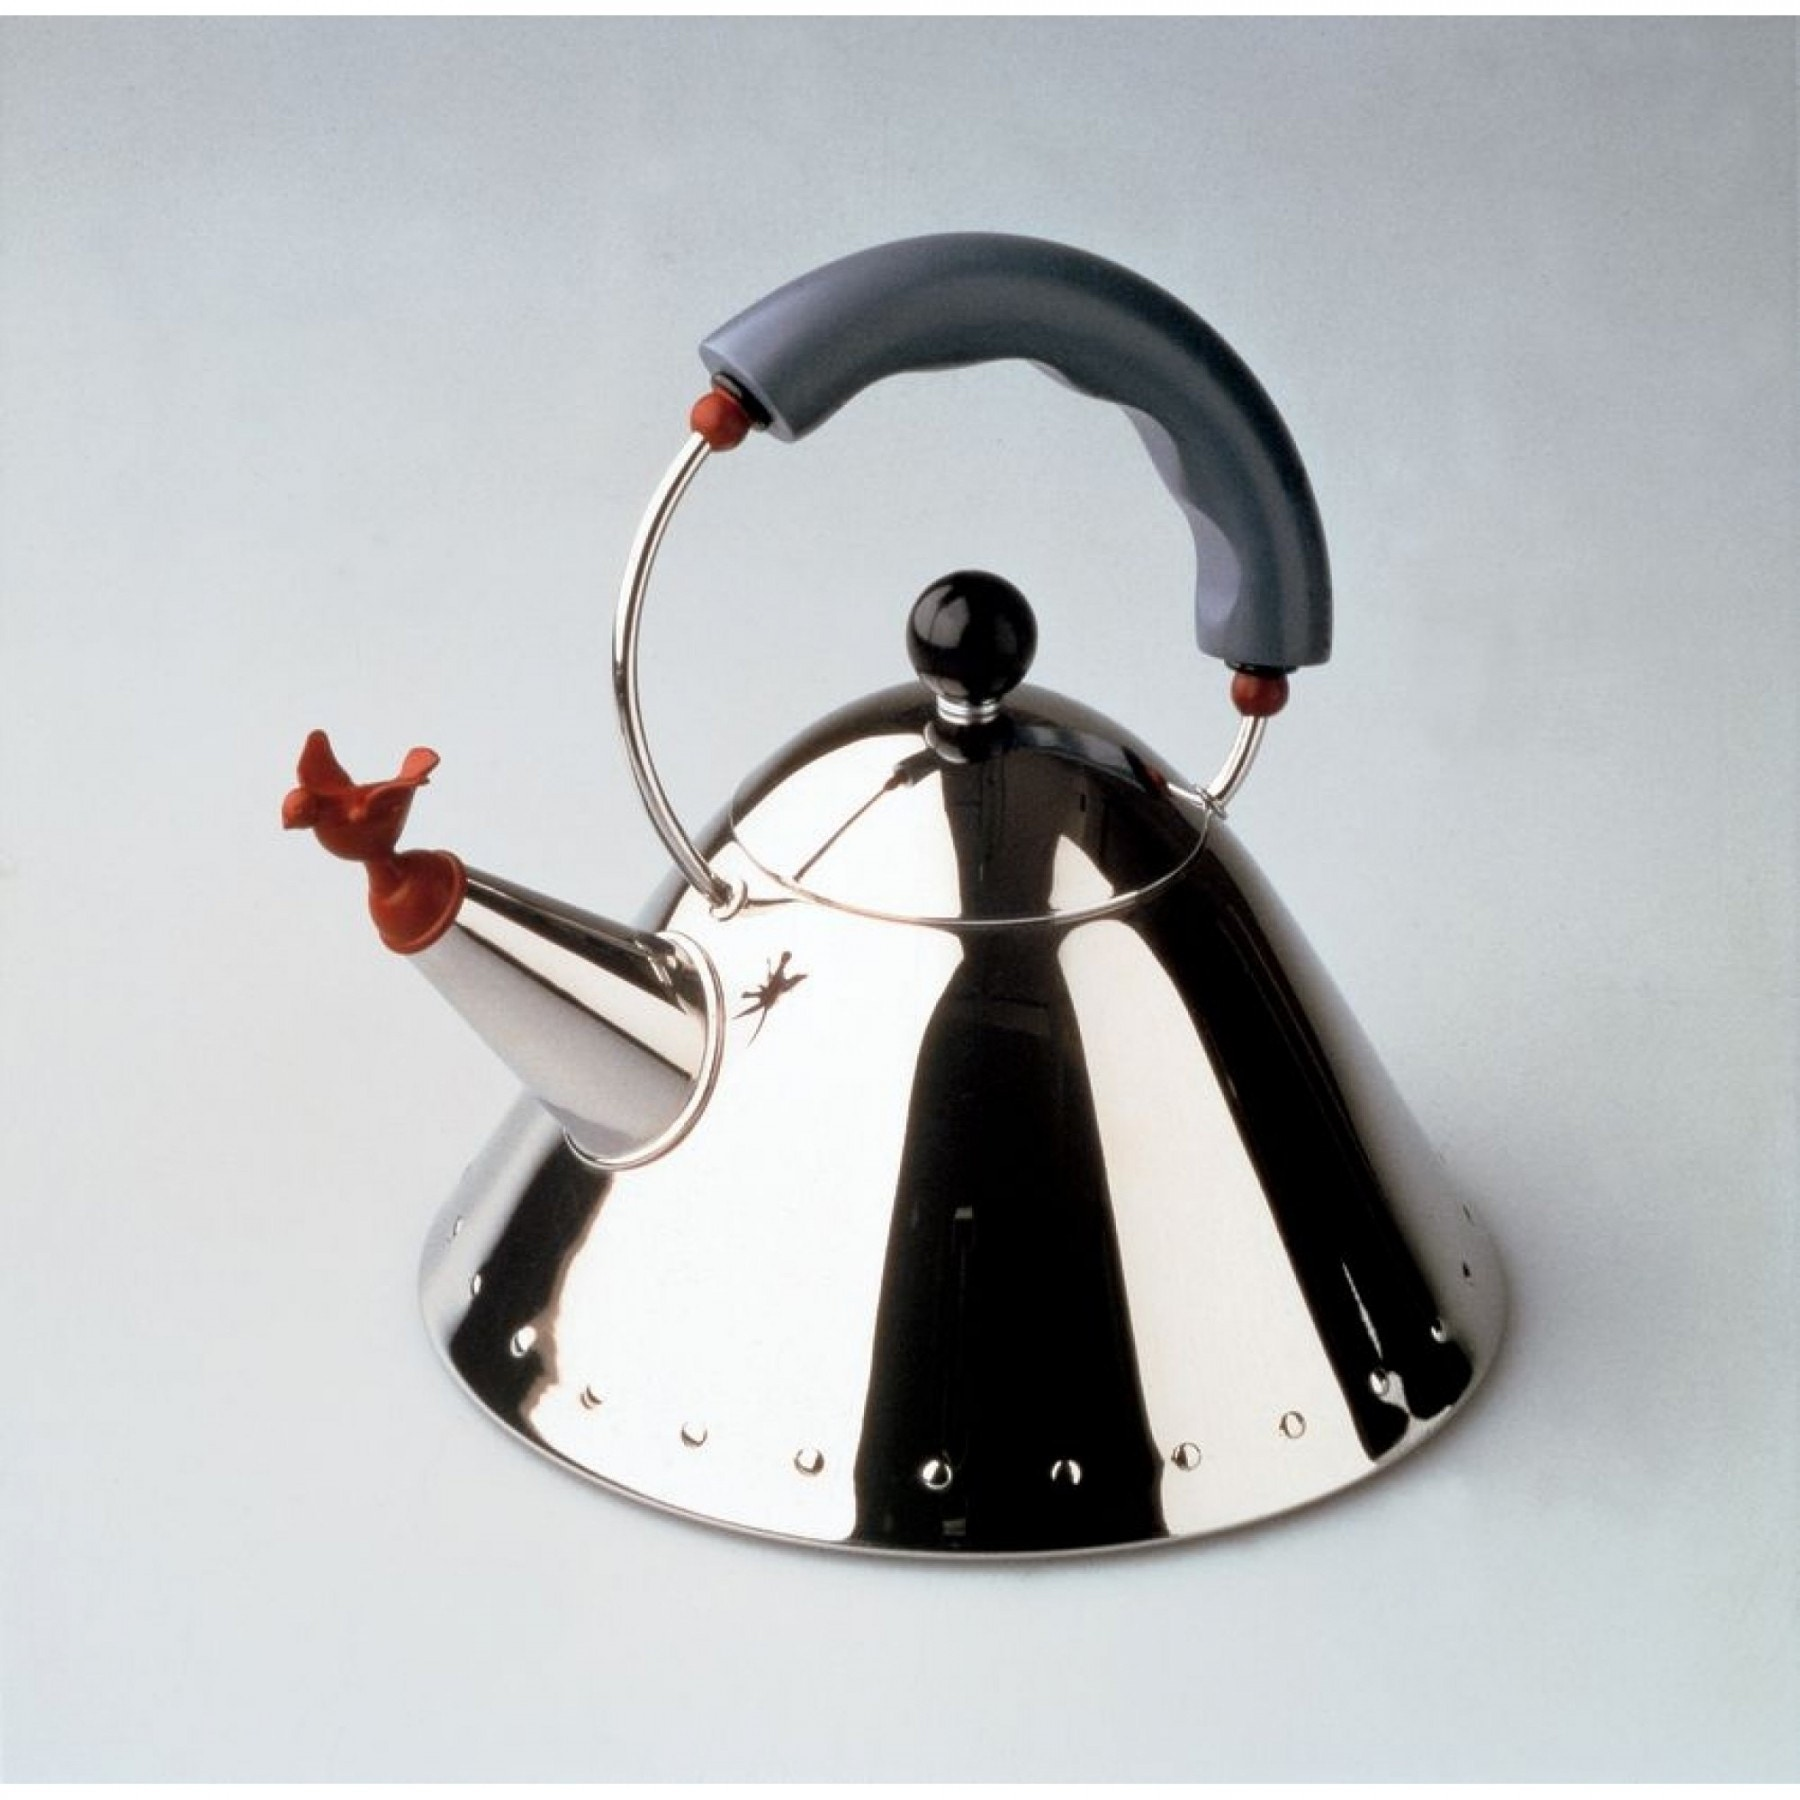 alessi michael graves kettle with small birdshaped whistle  gr  -